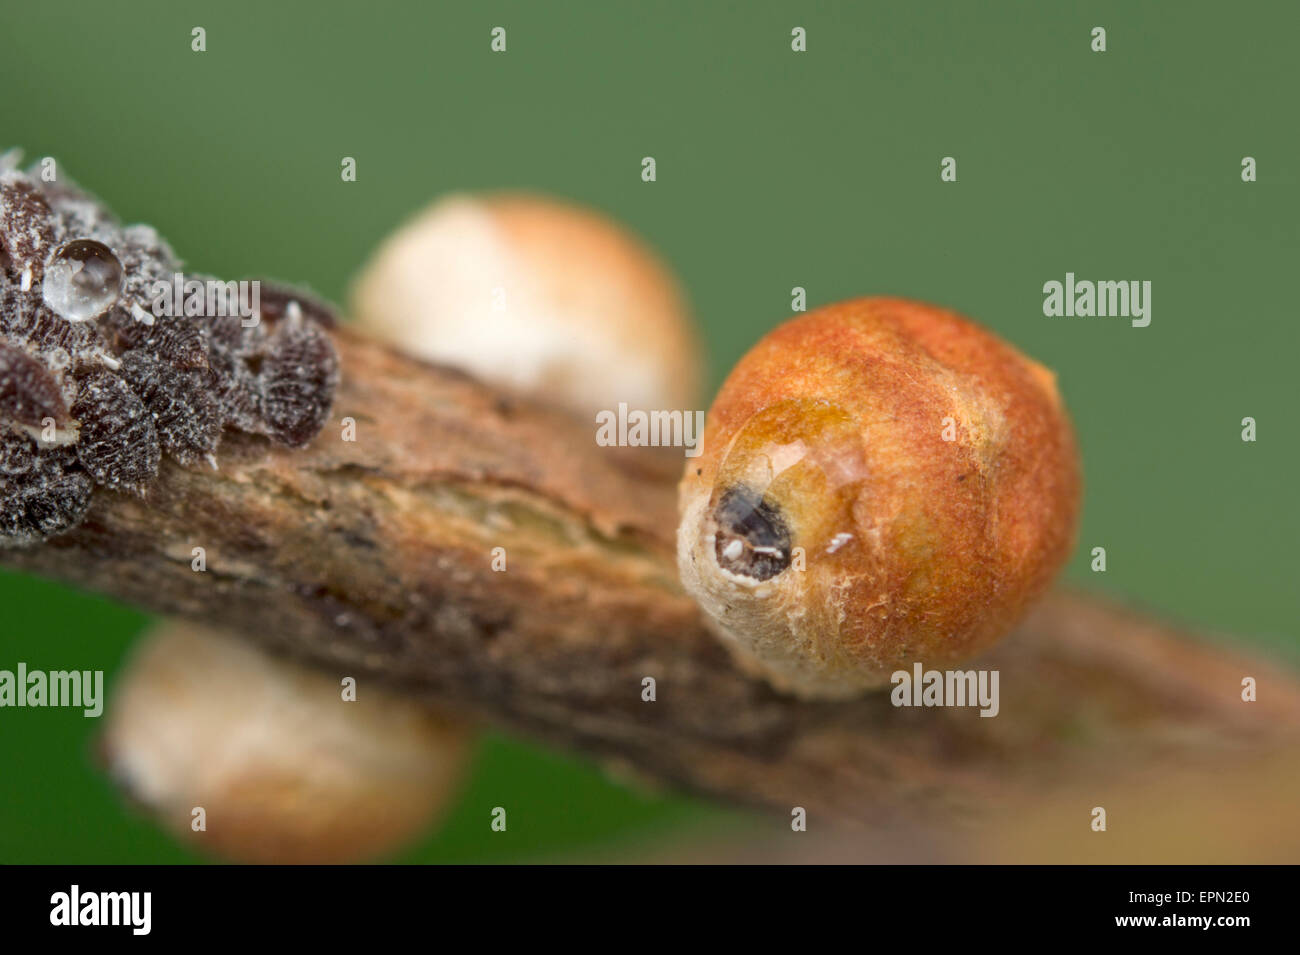 Gumtree scale nymphs and adult females - Stock Image